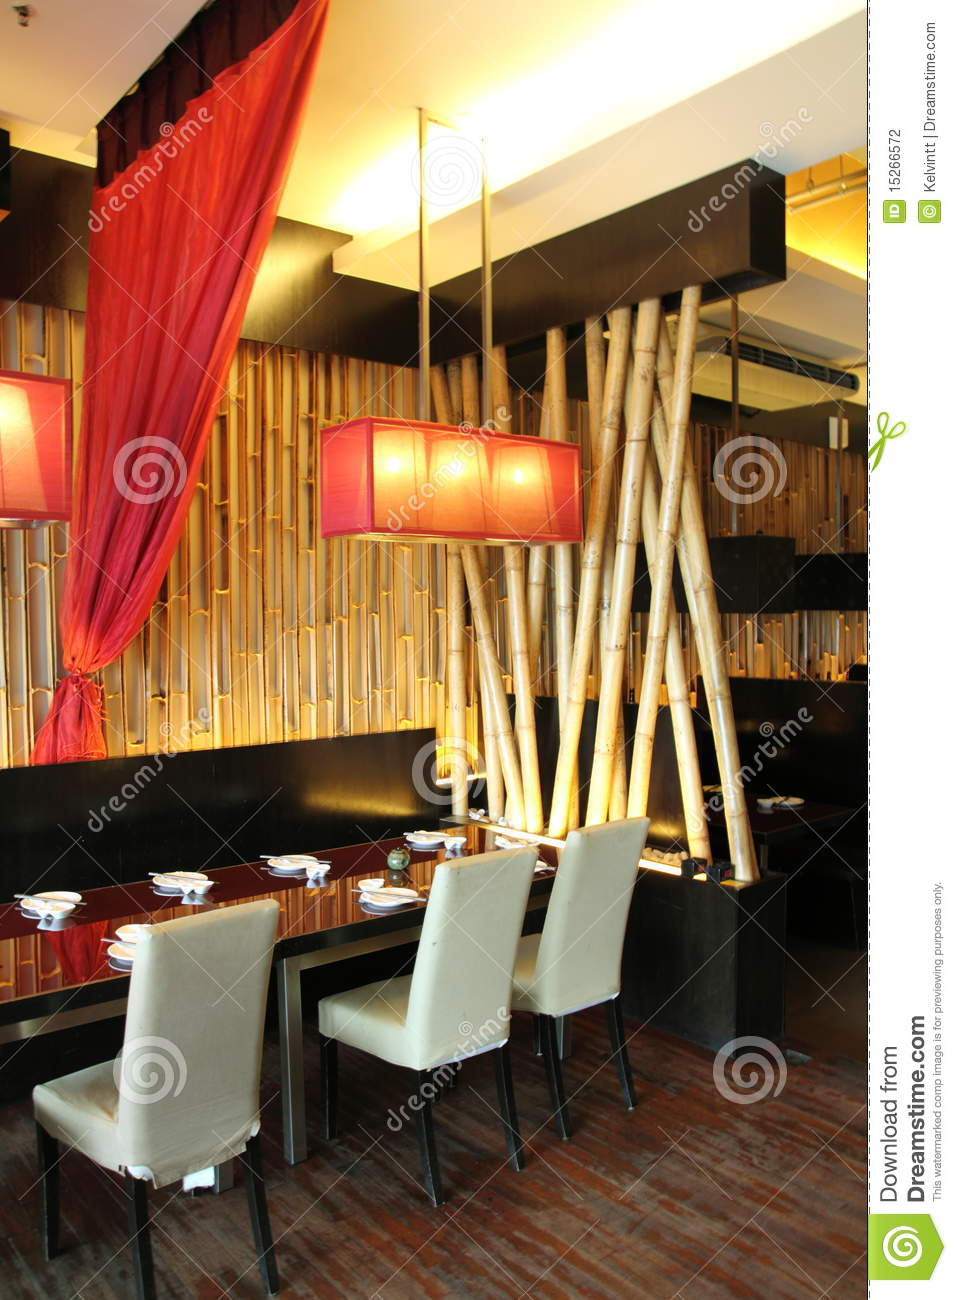 Restaurant interior design stock photography image 15266572 for Brilliant cafe interior design ideas